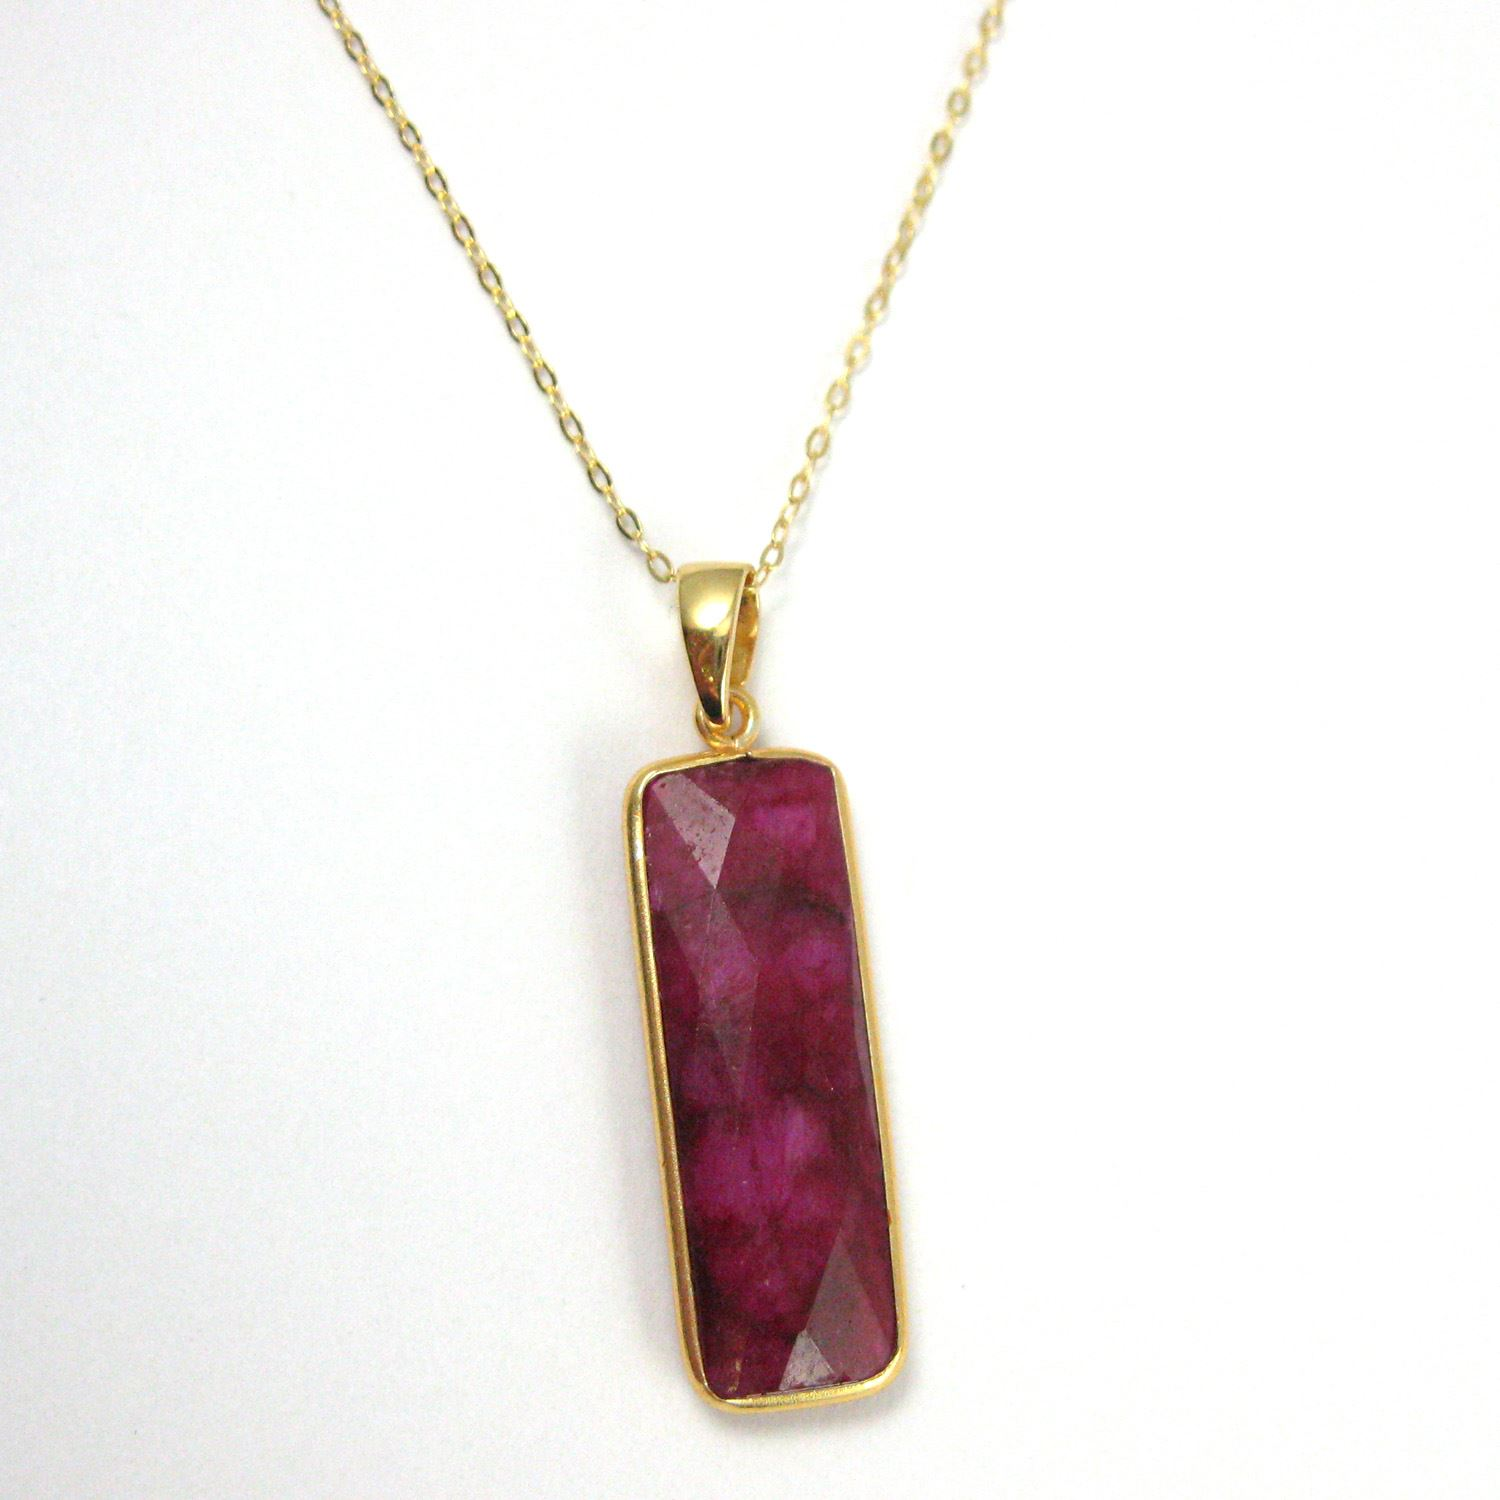 Bezel Gemstone Pendant with Bail - Gold plated Sterling Silver Rectangle Gem Pendant - Ready for Necklace - 40mm - Ruby Dyed